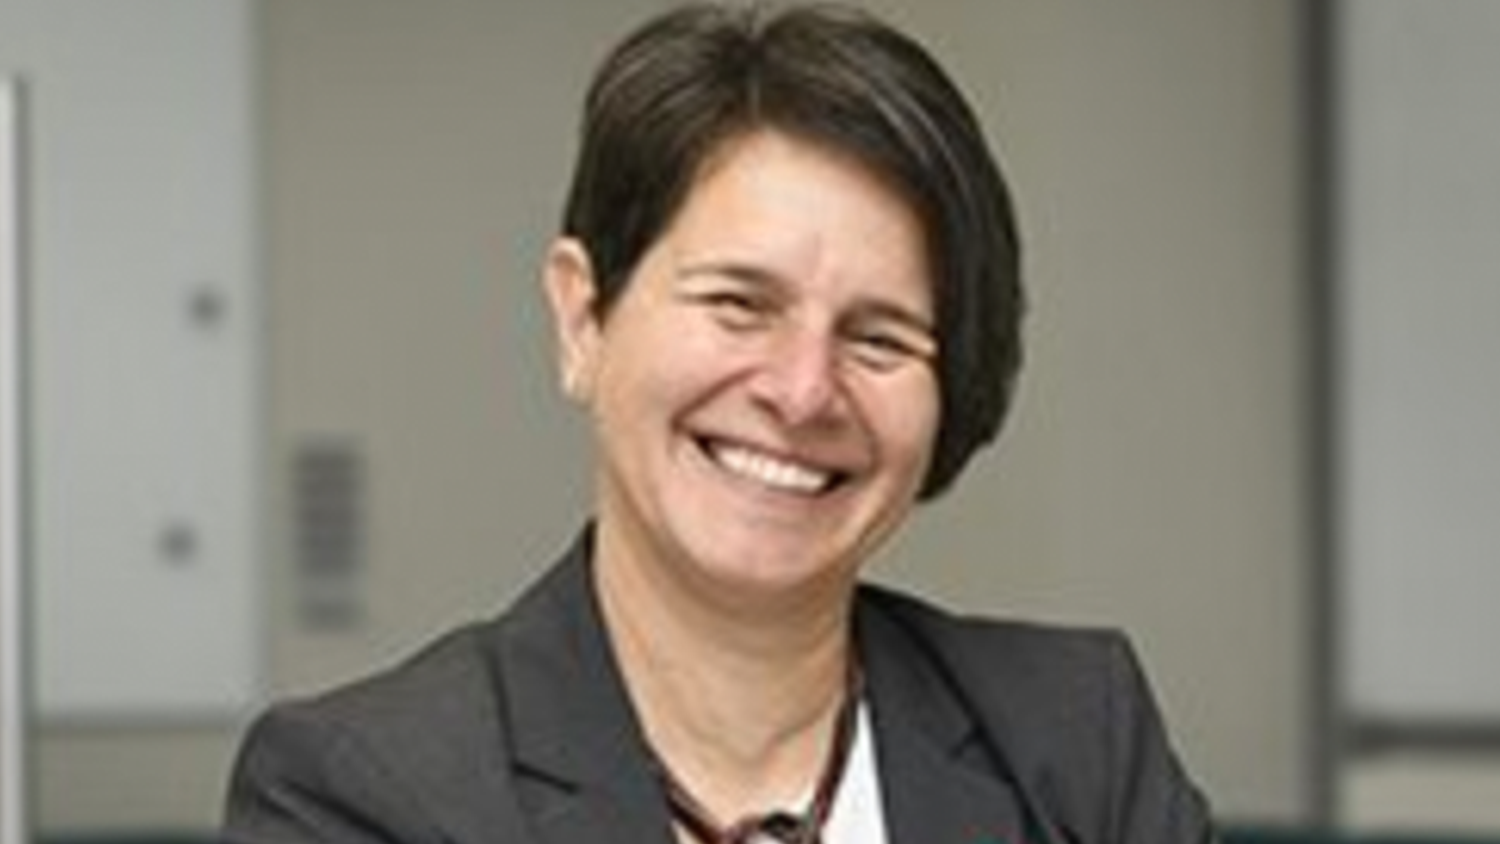 Associate Dean for Research and Innovation Paola Sztajn